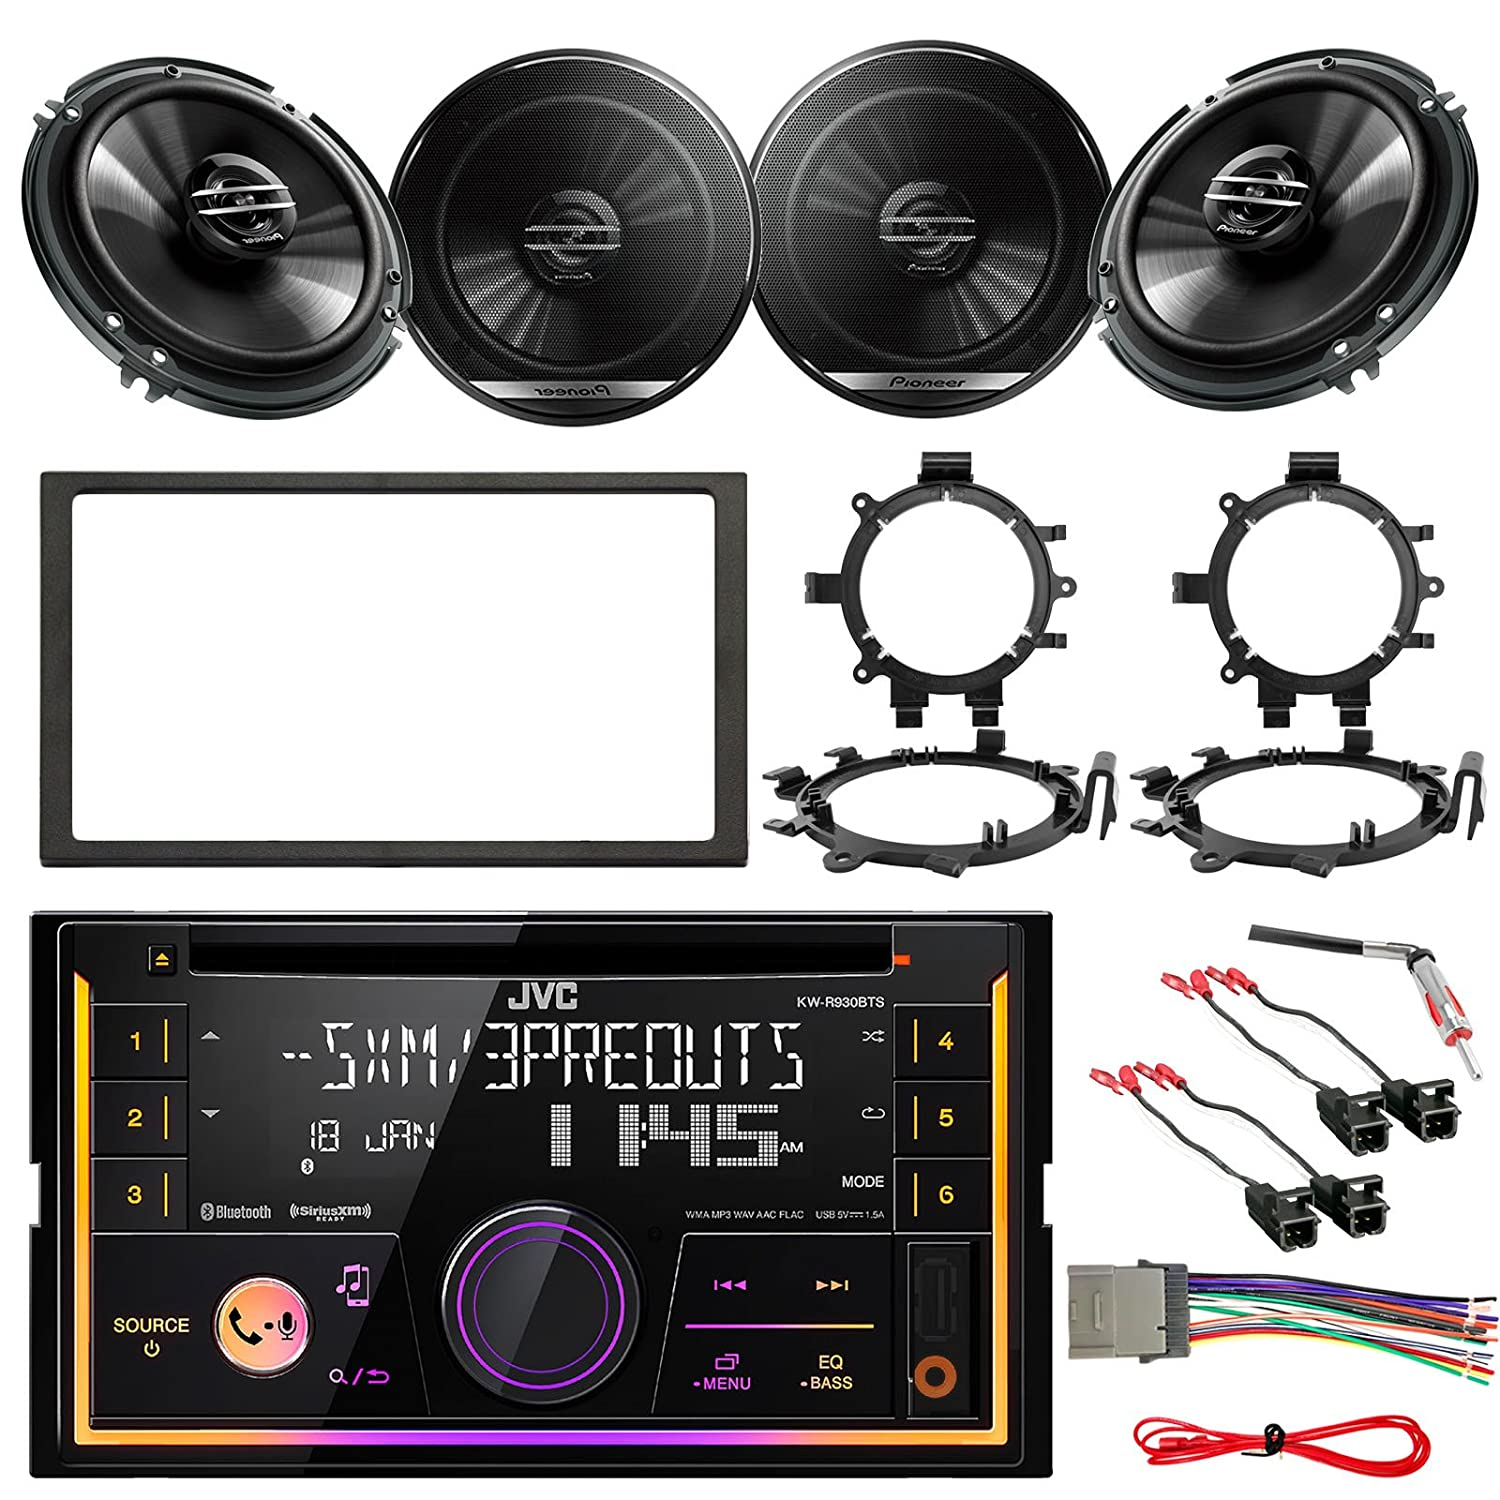 Jvc Kw R930bts Double Din Bluetooth Car Cd Player Stereo Wiring Harness Power Plug Receiver Bundle Combo With 4 X 65 300w Coaxial Speakers W Brackets 4x